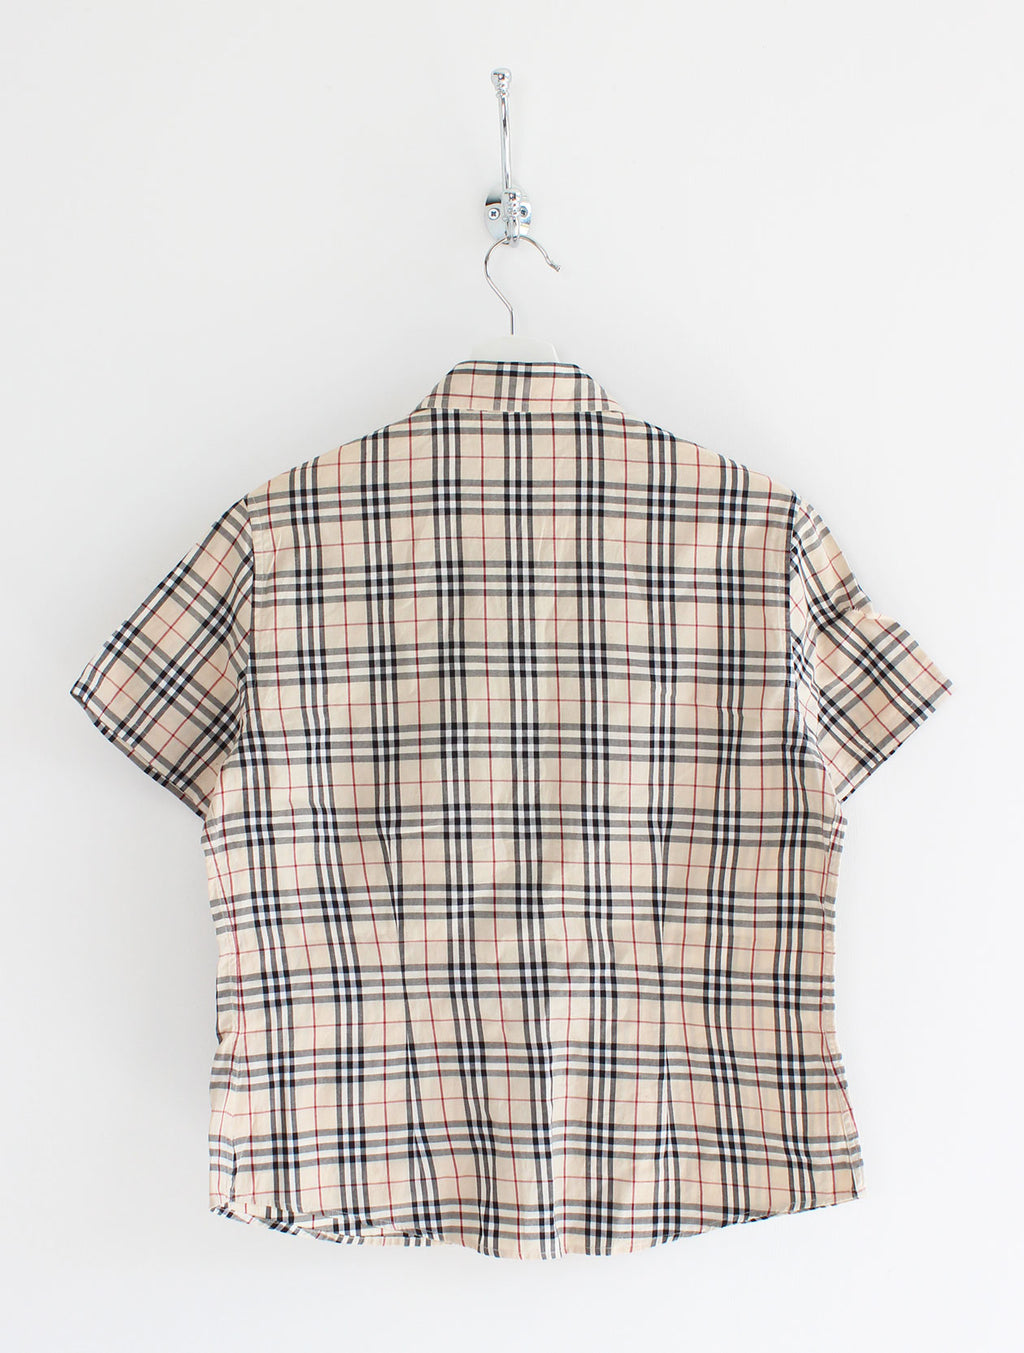 Women's Burberry Nova Check Shirt (L)